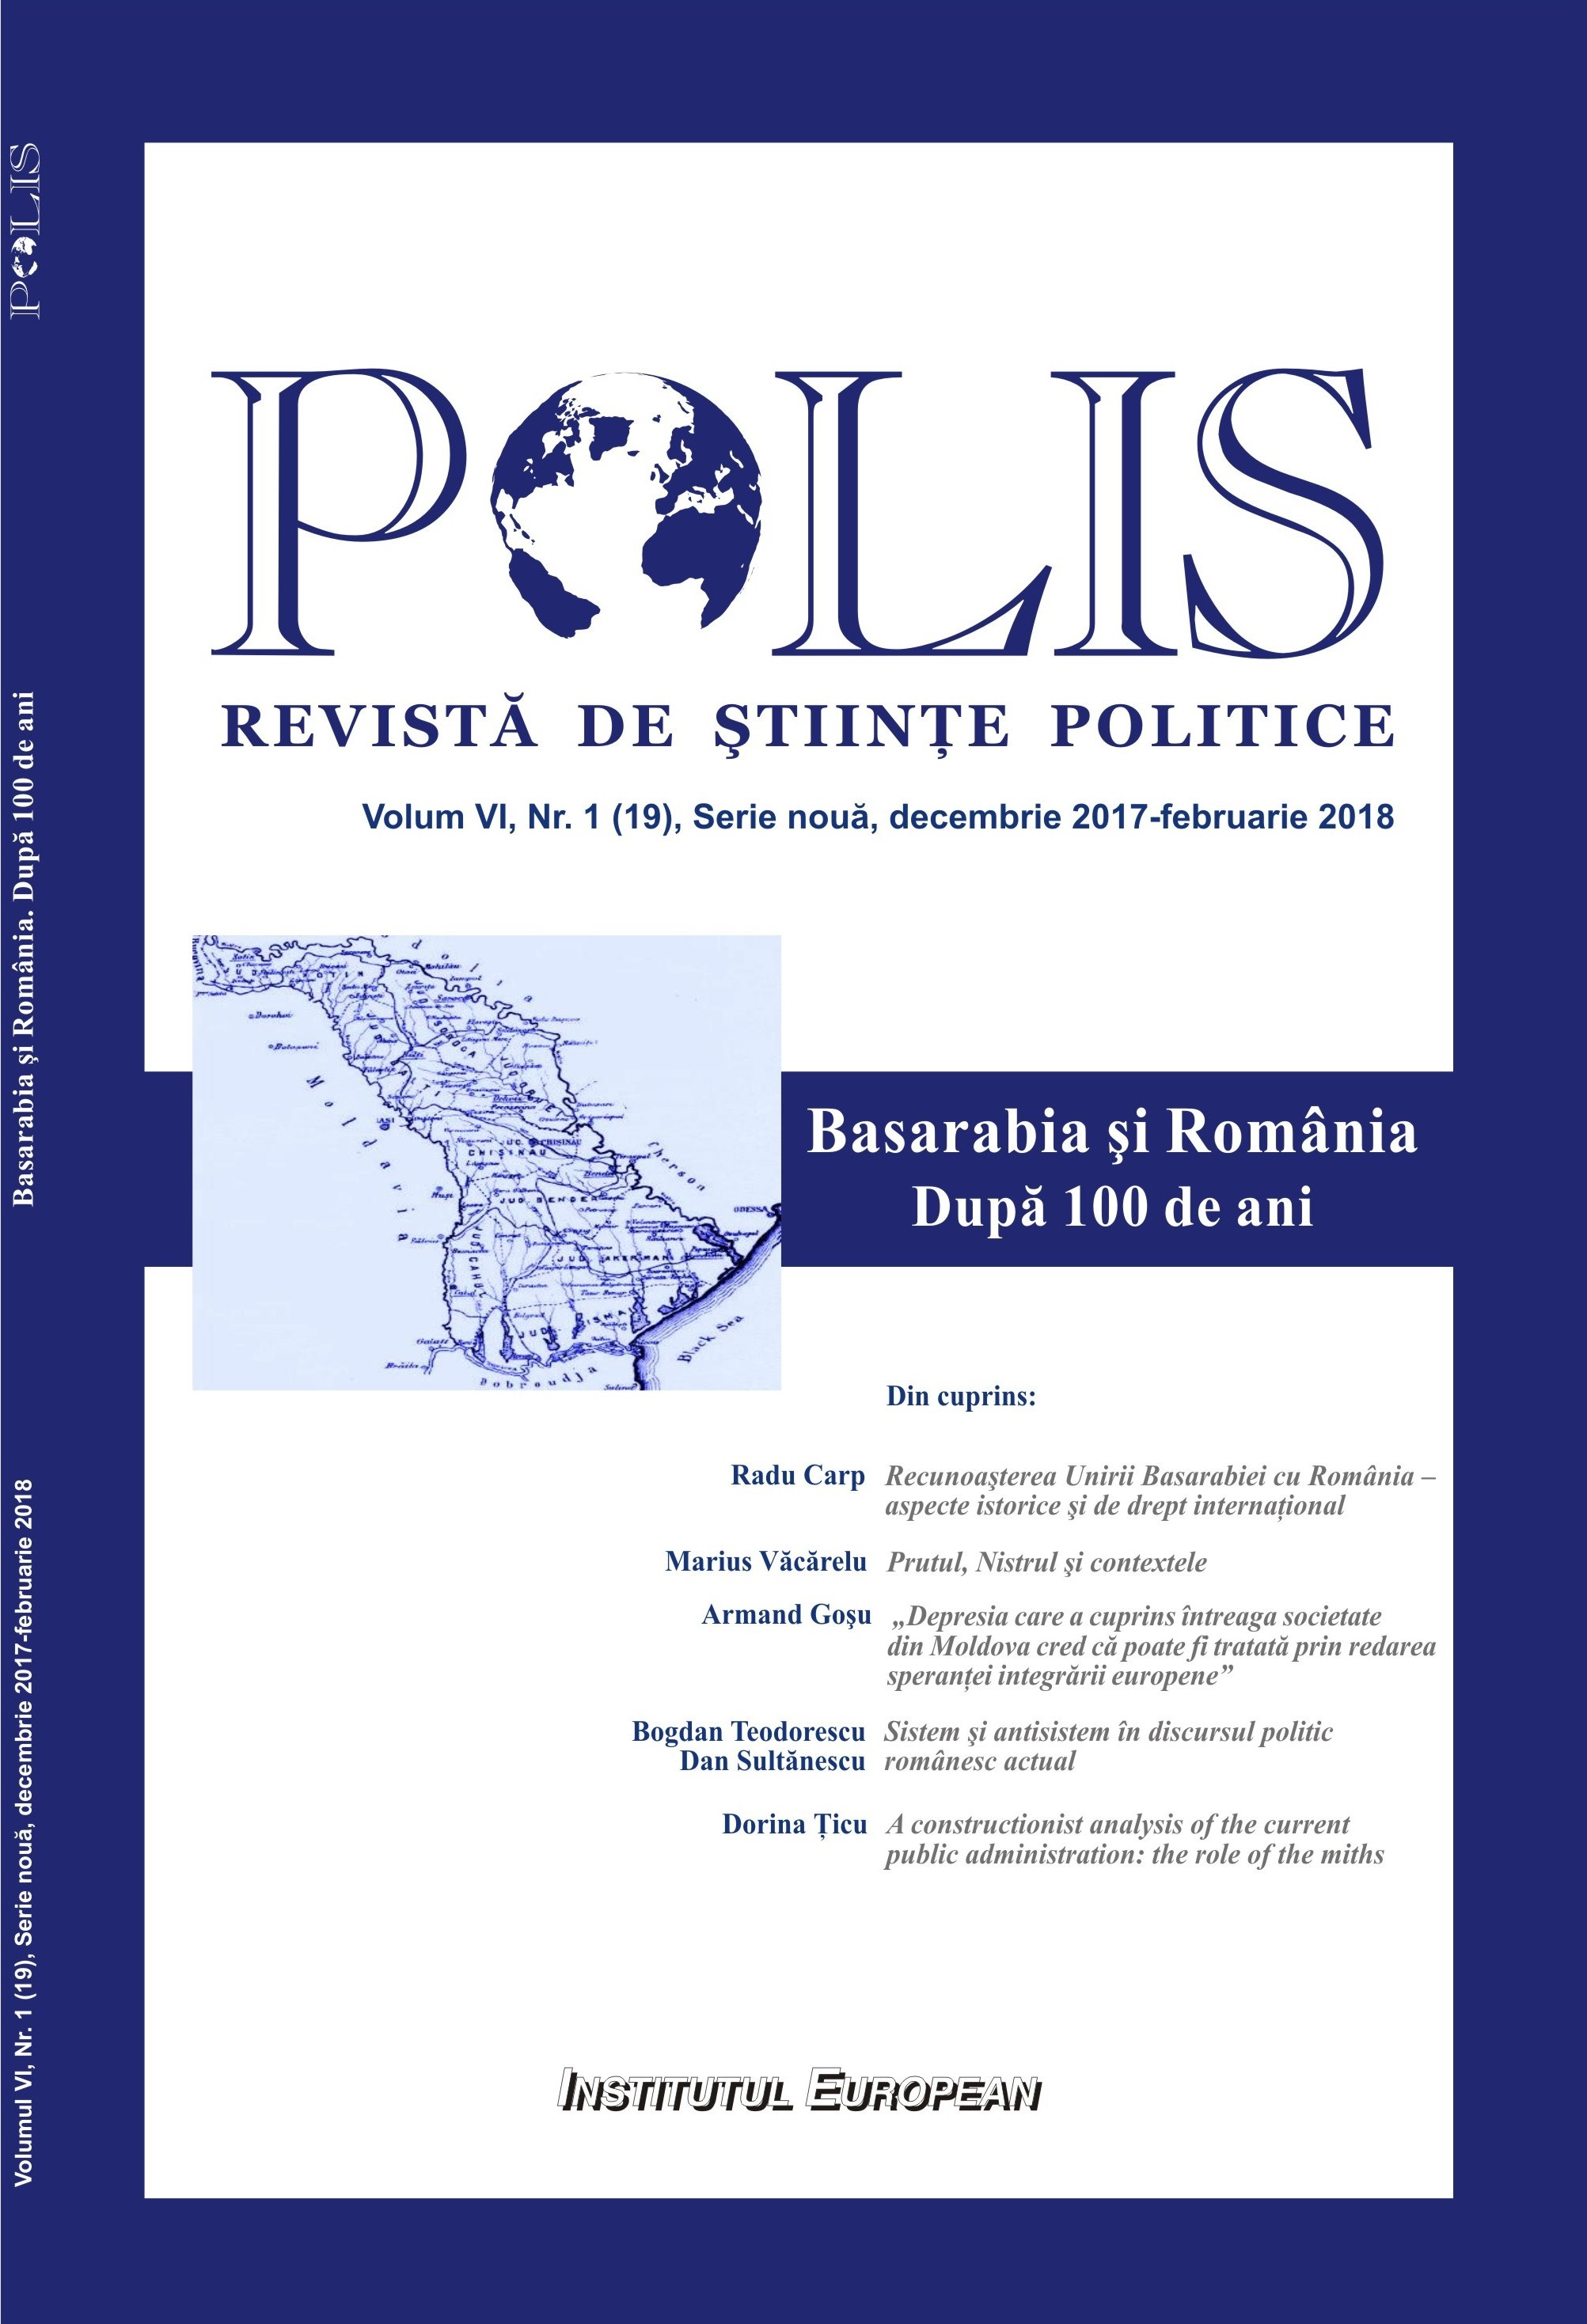 a constructionist analysis of the current public administration the